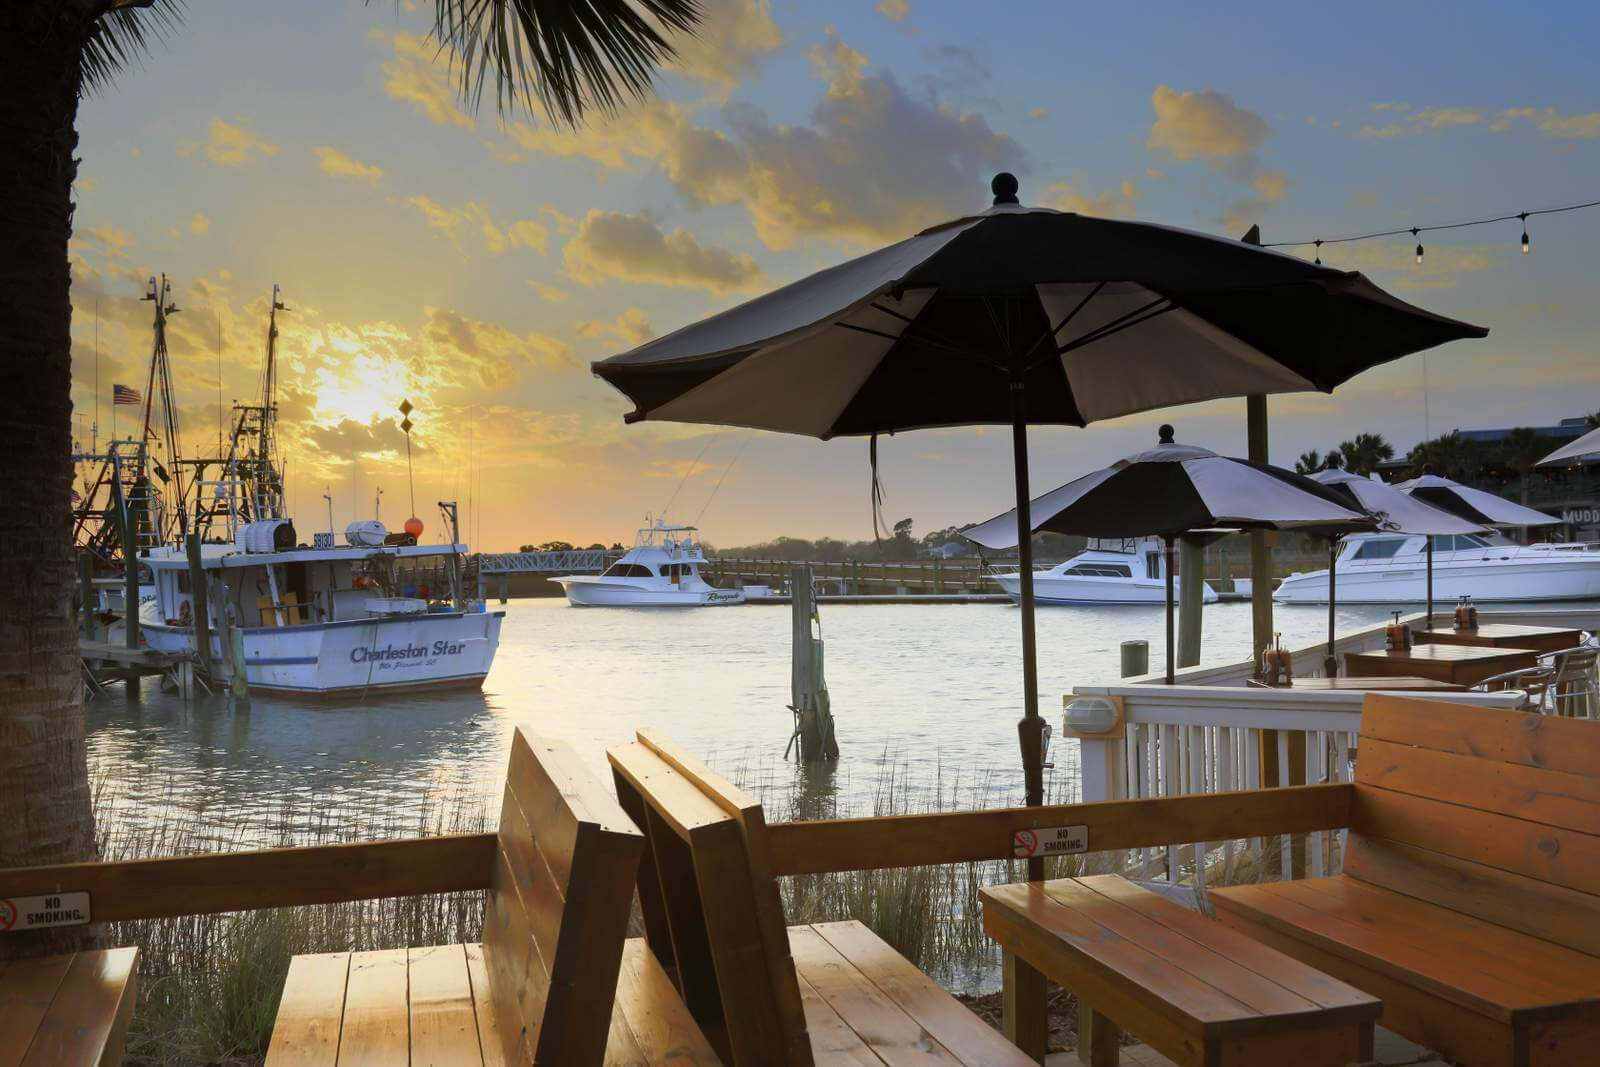 Spend an Afternoon on the Creek at Saltwater Cowboys